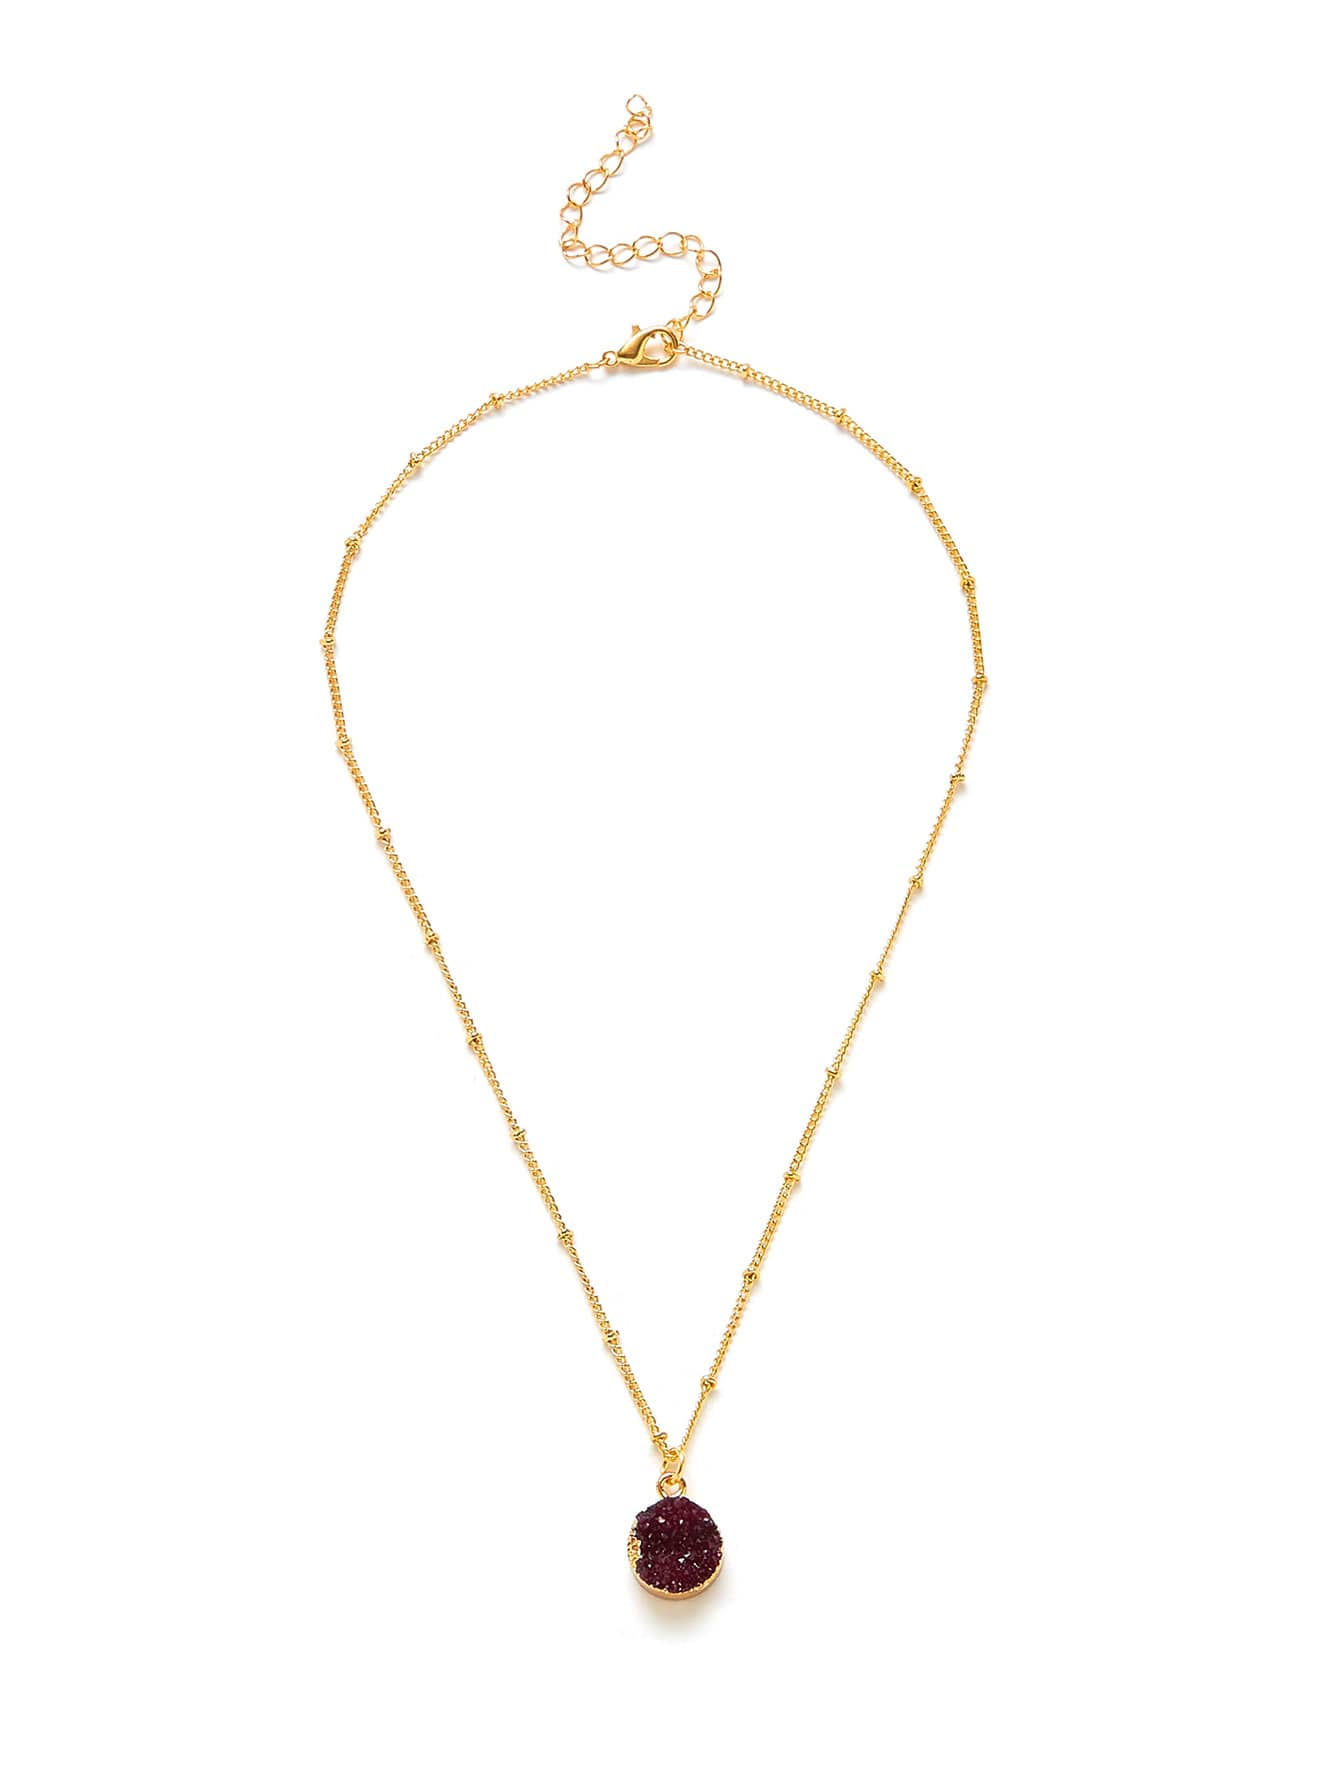 Round Pendant Beaded Chain Necklace